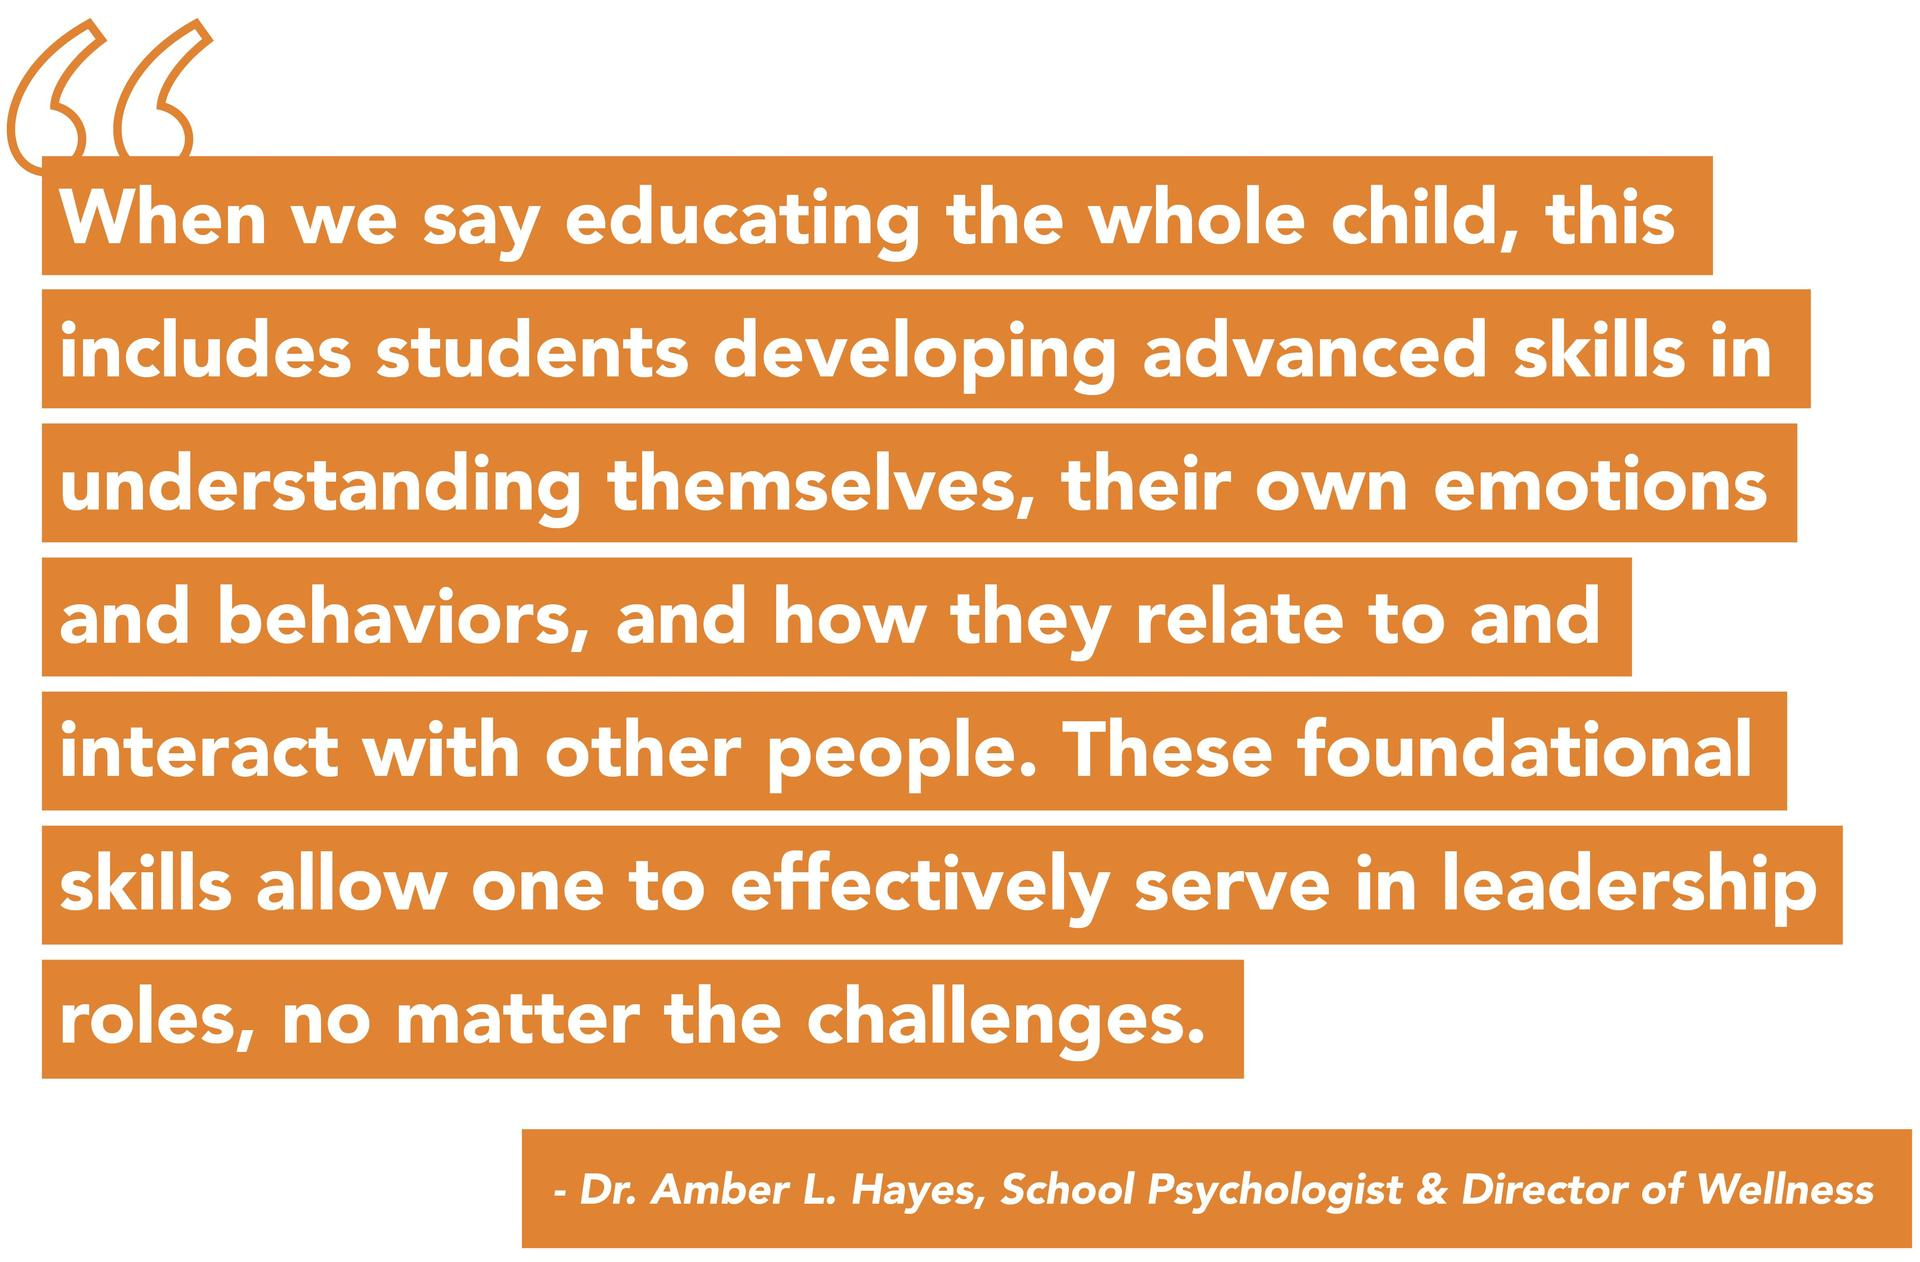 Wellness quote from Dr. Amber Hayes